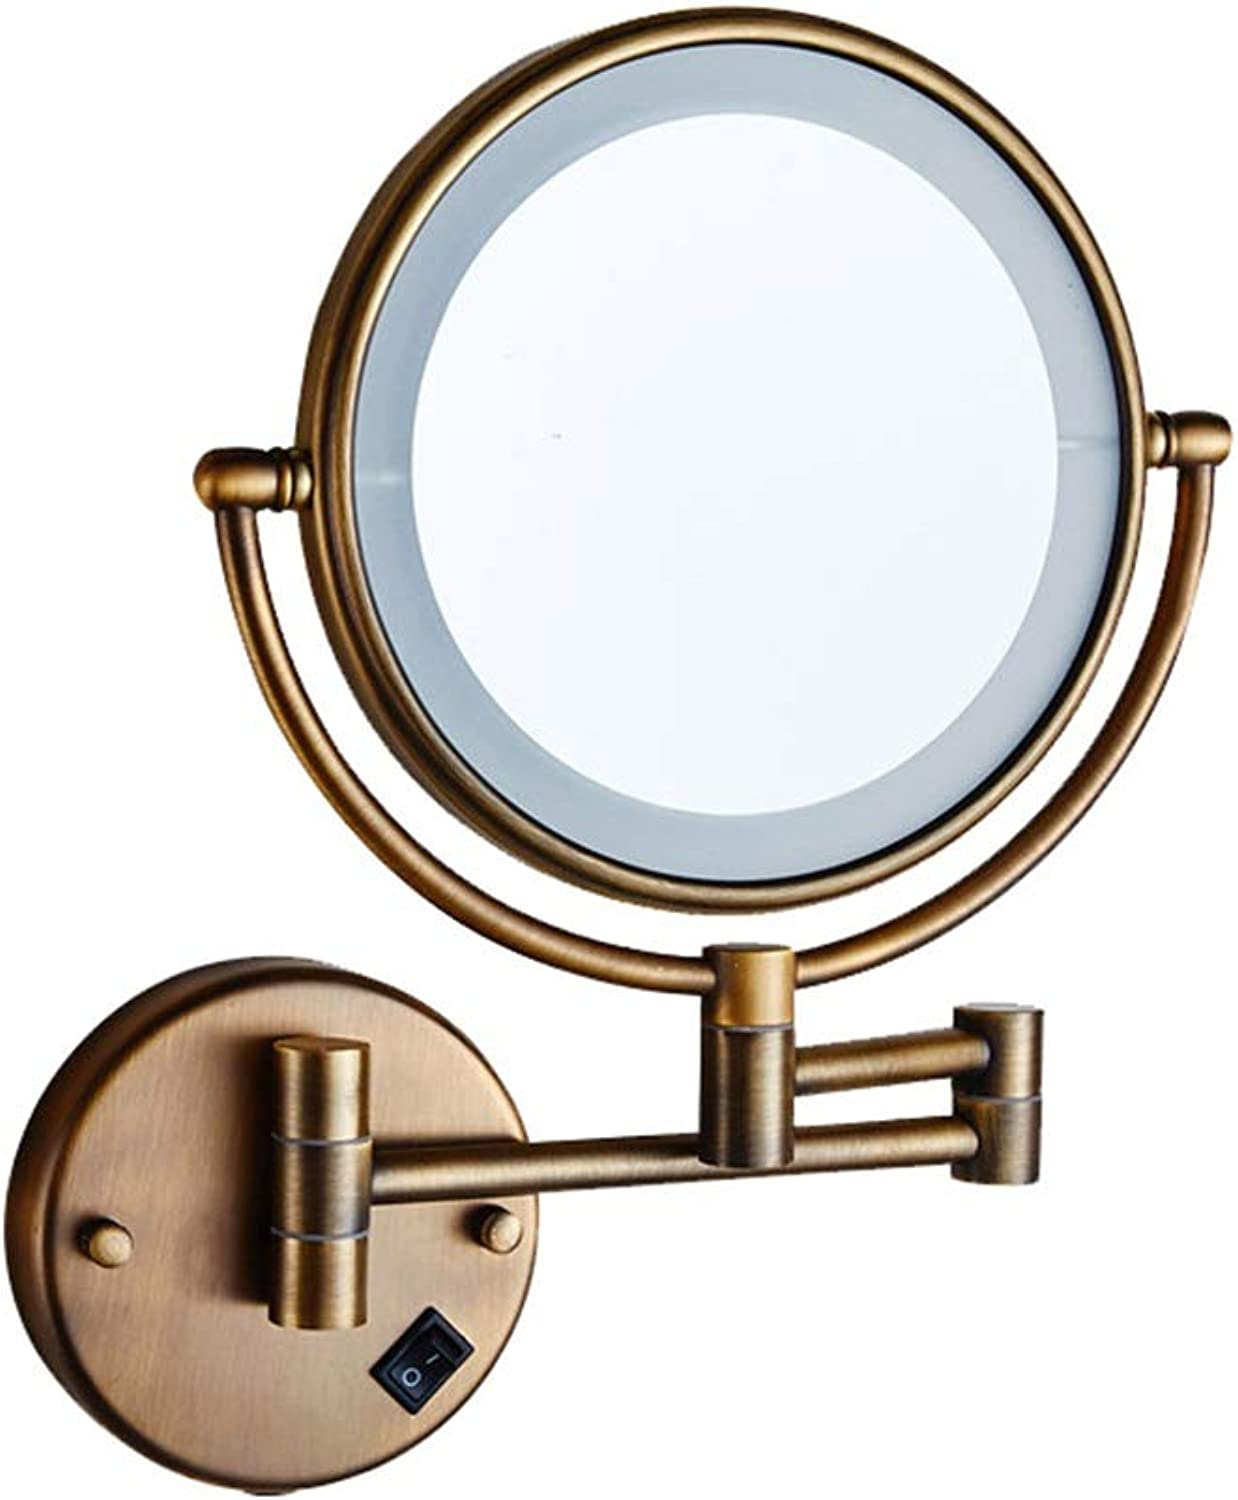 GSHWJS LED Makeup Mirror Double-Sided Wall-Mounted Bathroom Mirror Shaving Mirror   8 Inch Adjustable Retractable Retro Copper Wall Mirror